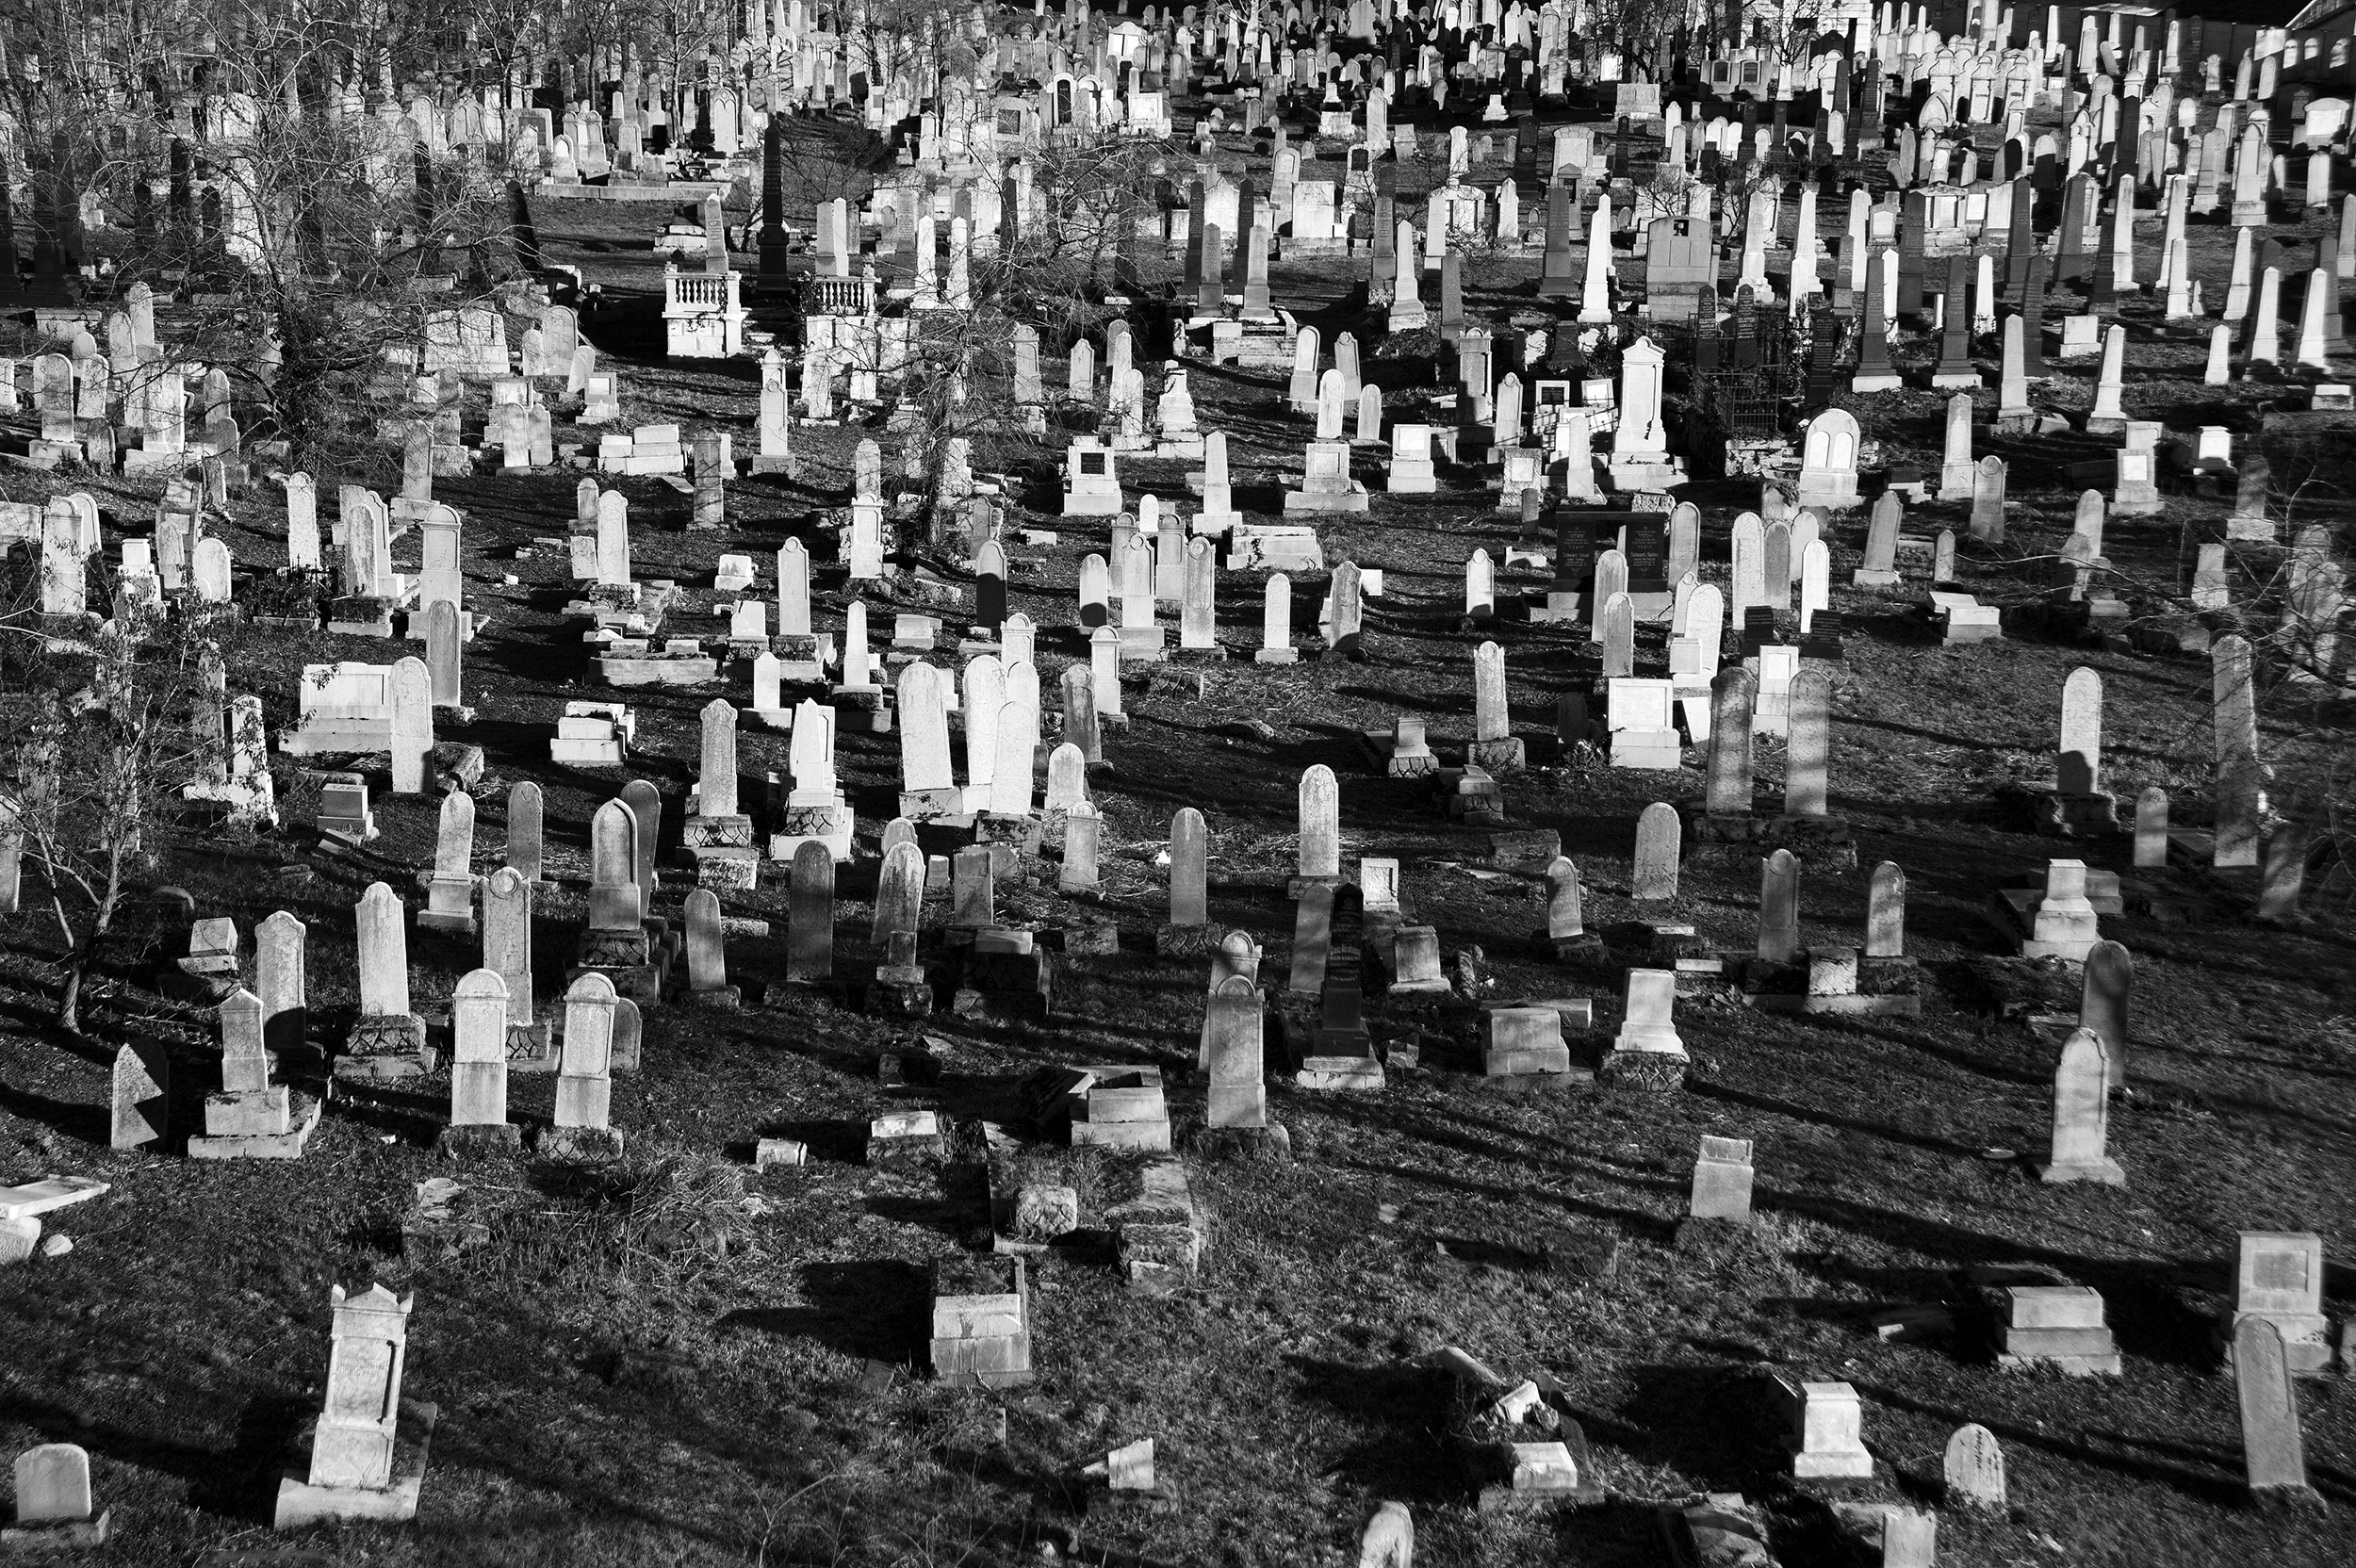 The Jewish Orthodox Cemetery in Velenta, situated in eastern Oradea, sets inactive since 1952 and holds around four thousand graves; January 13, 2015. The oldest Jewish cemetery in Oradea, some of the tombstones predate the 19th century and most are falling into disrepair.